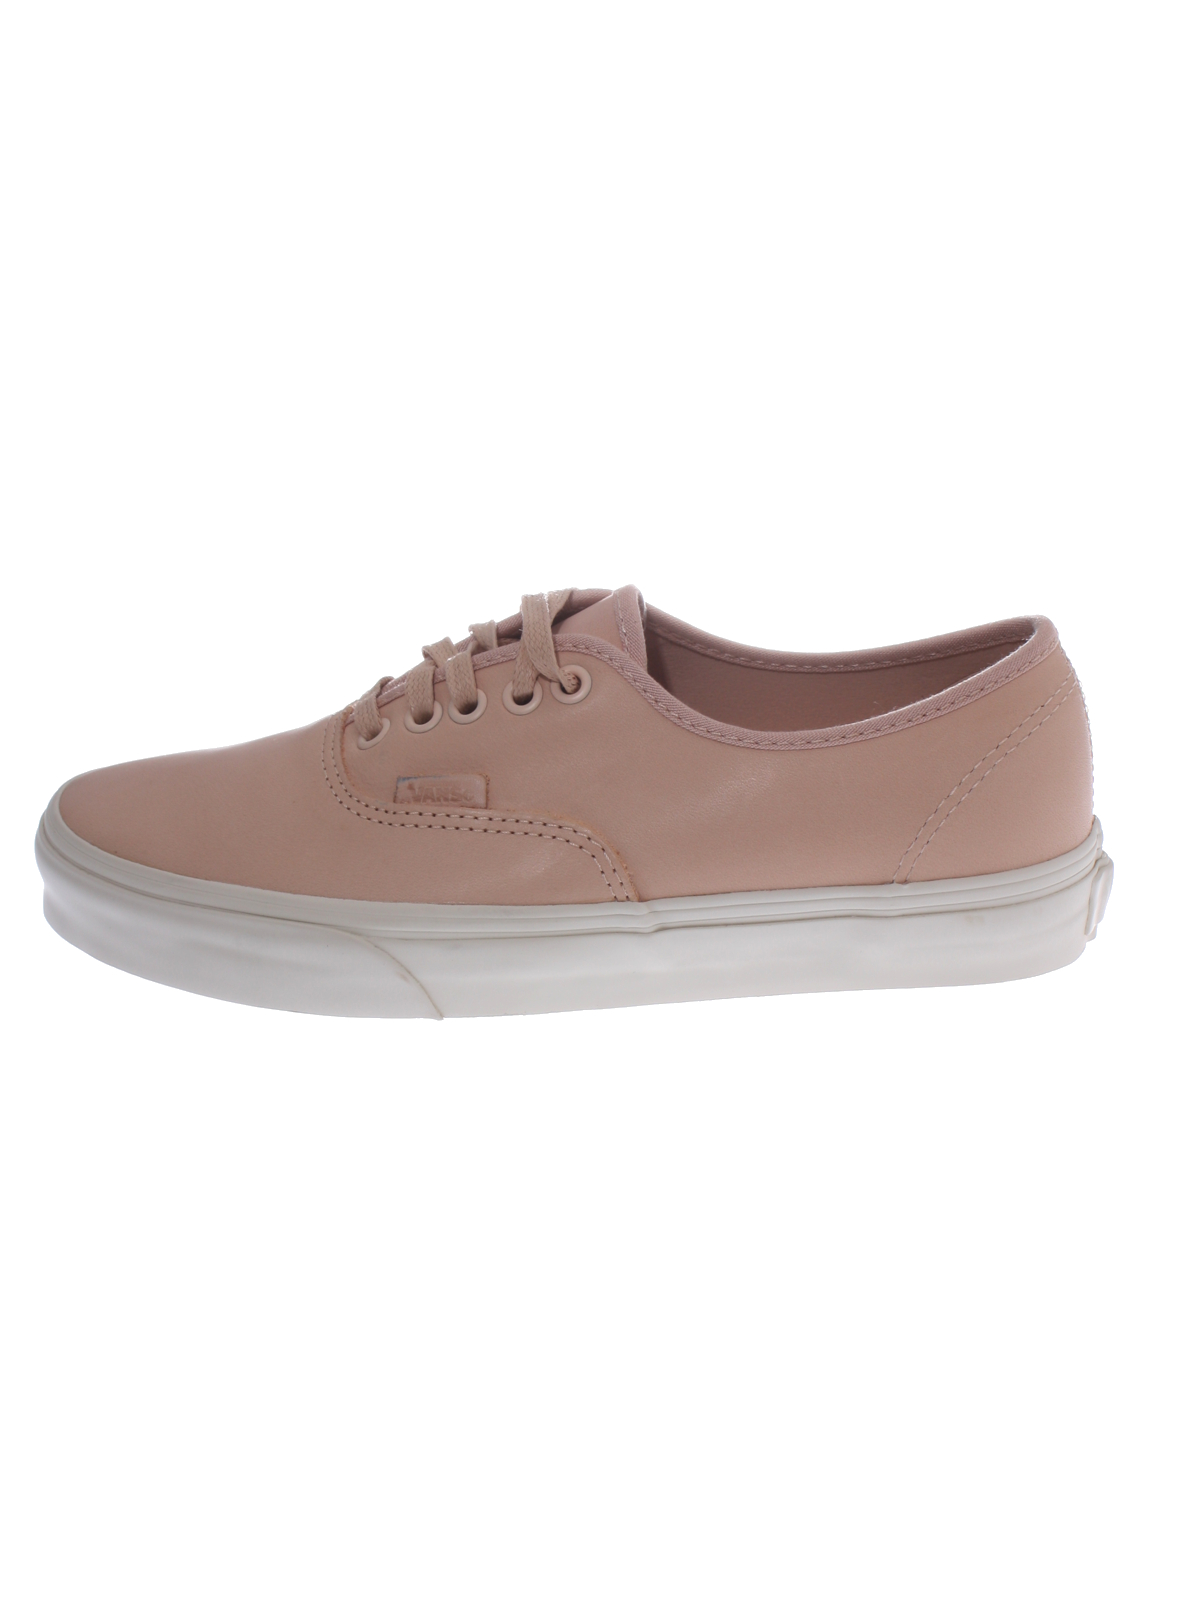 Vans Authentic Dx Unisex Sneaker Schuhe rosa (tan) VA327KLUI